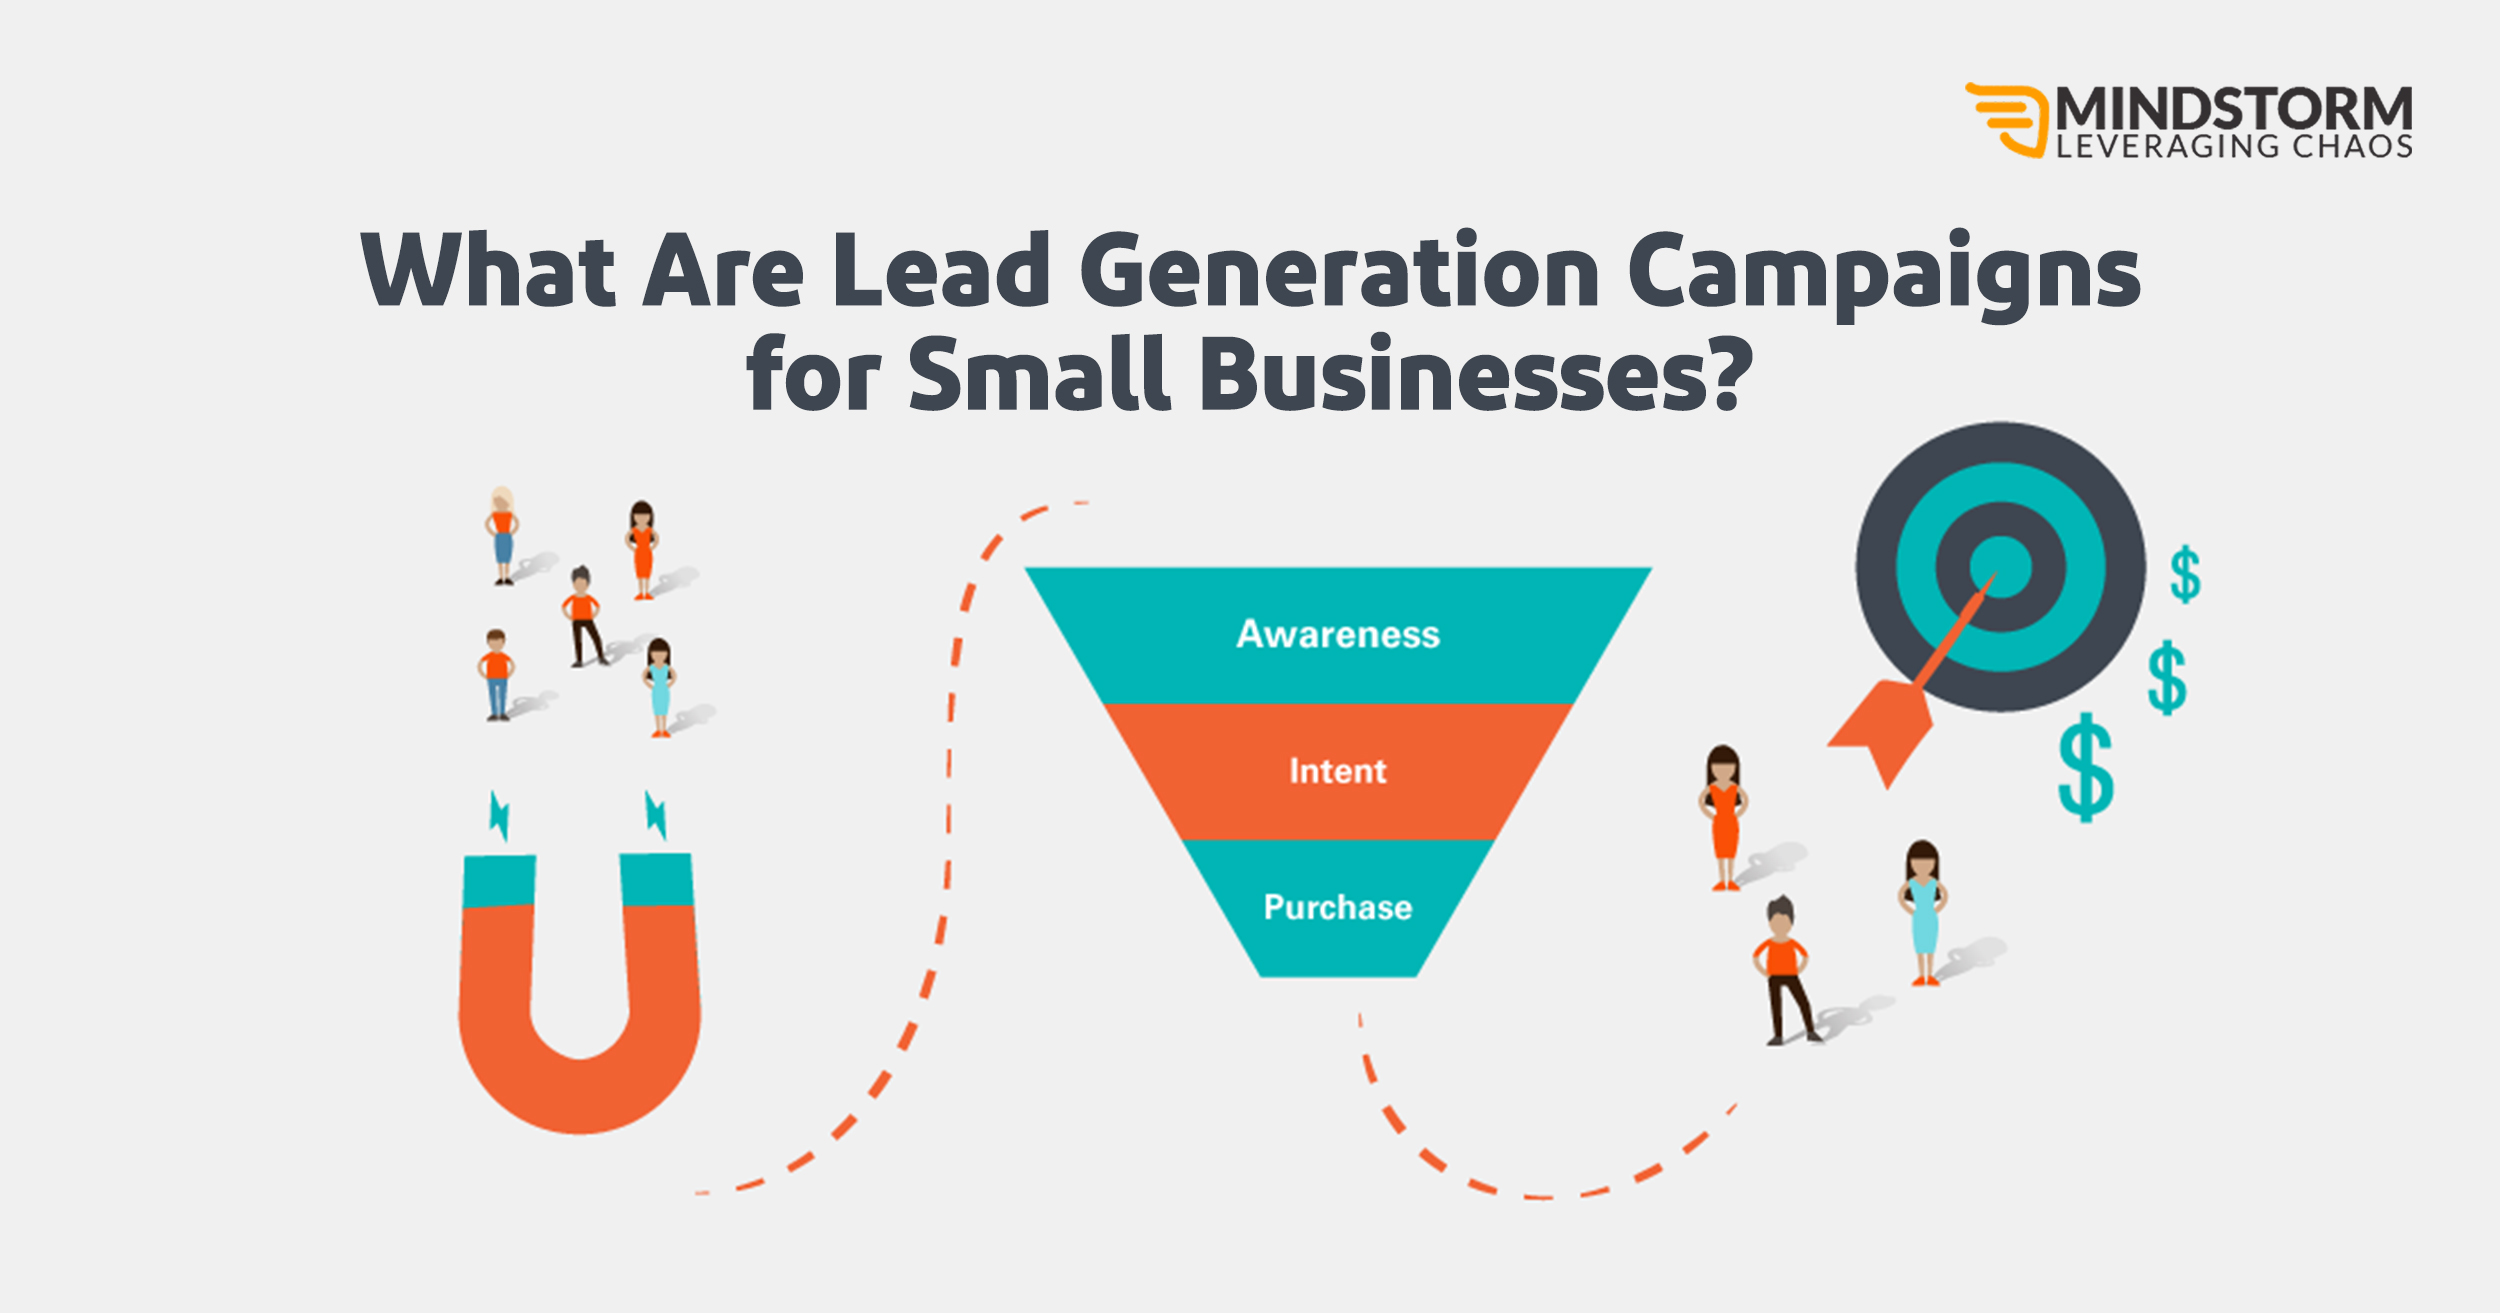 What Are Lead Generation Campaigns for Small Businesses?